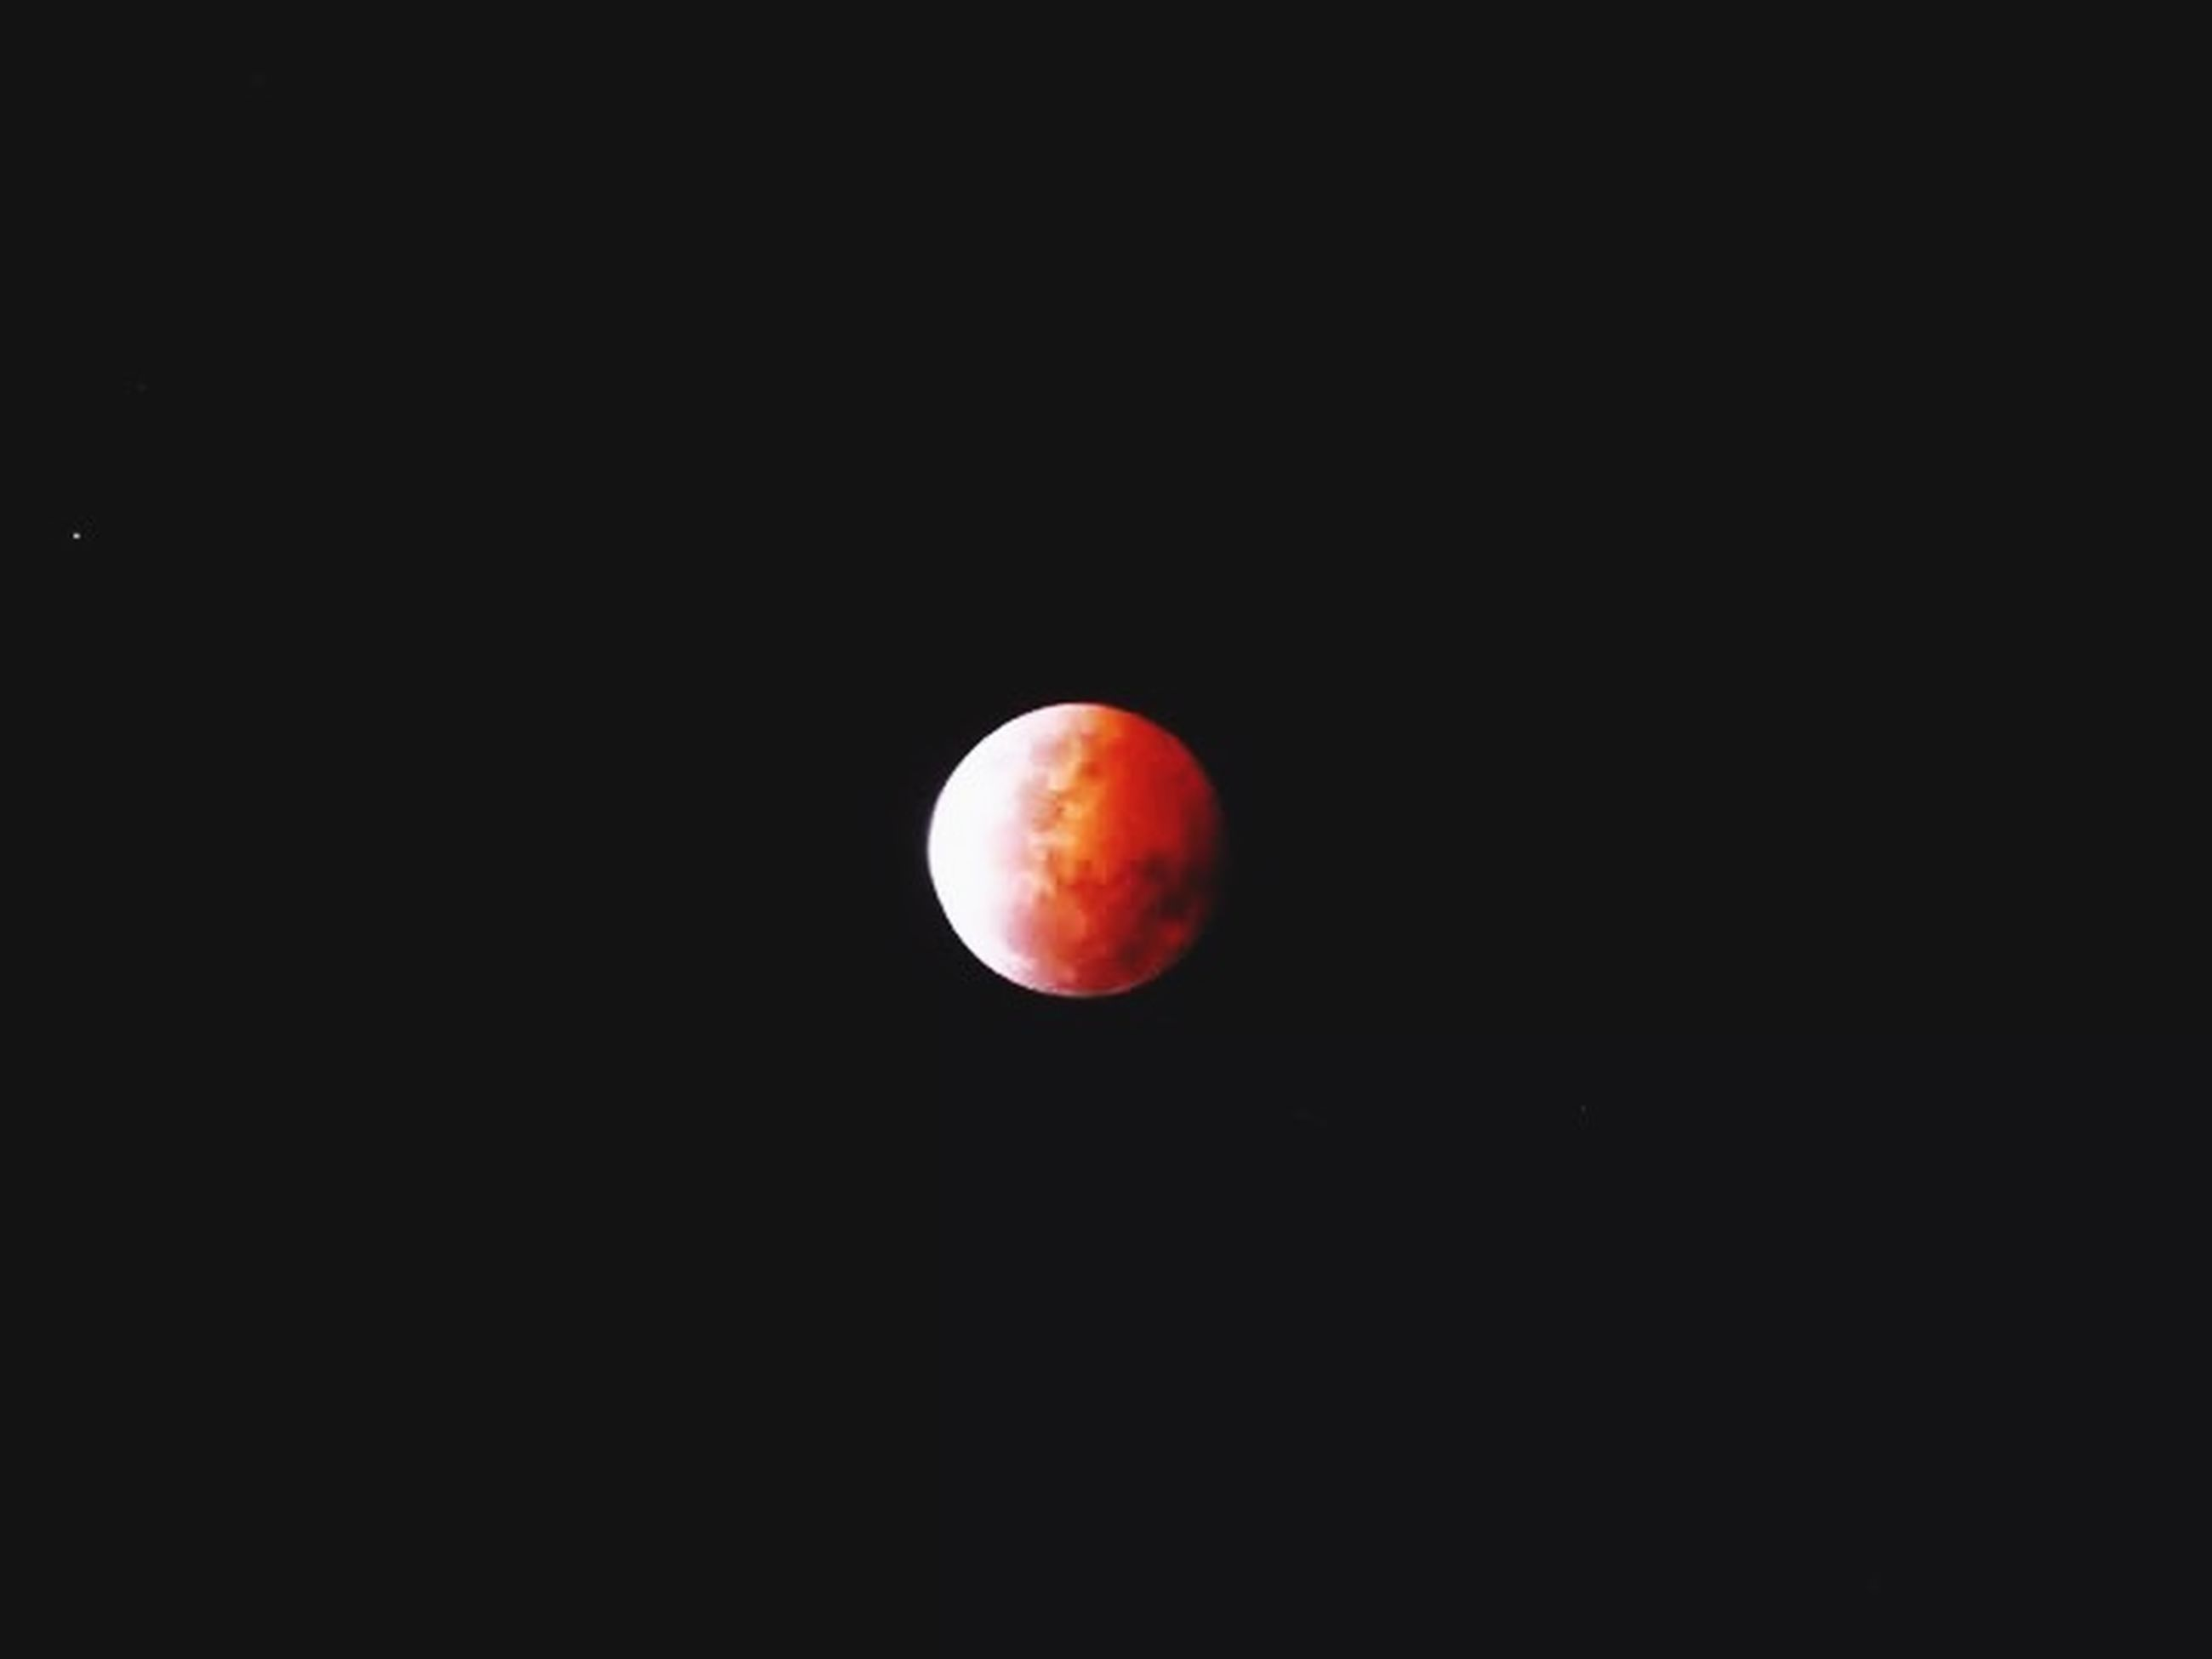 red, copy space, moon, night, full moon, planetary moon, clear sky, astronomy, circle, beauty in nature, tranquility, low angle view, dark, studio shot, nature, no people, scenics, tranquil scene, black background, moon surface